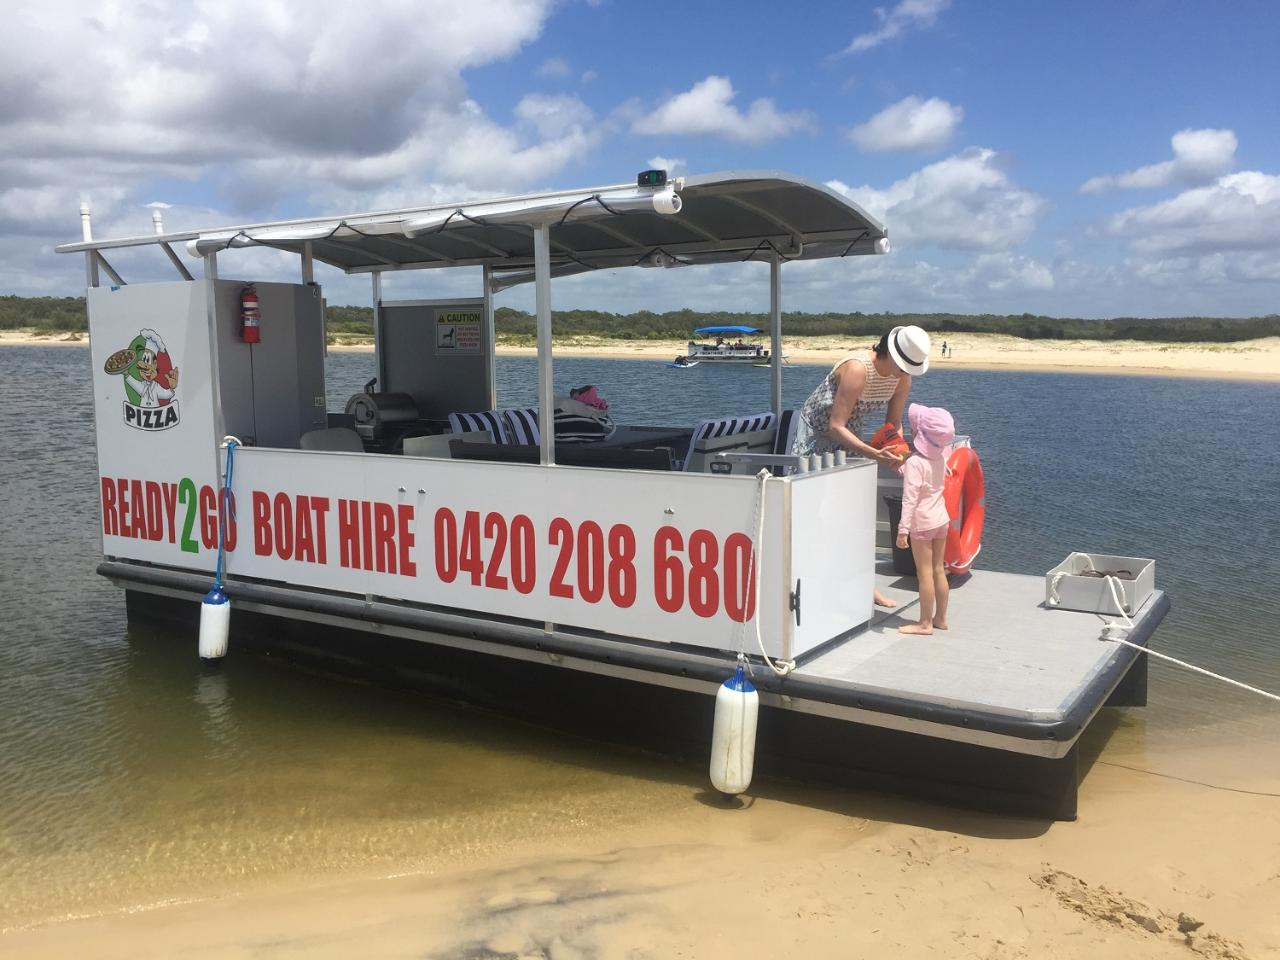 Half Day: 8 Person Pizza/BBQ Pontoon Boat - With Toilet